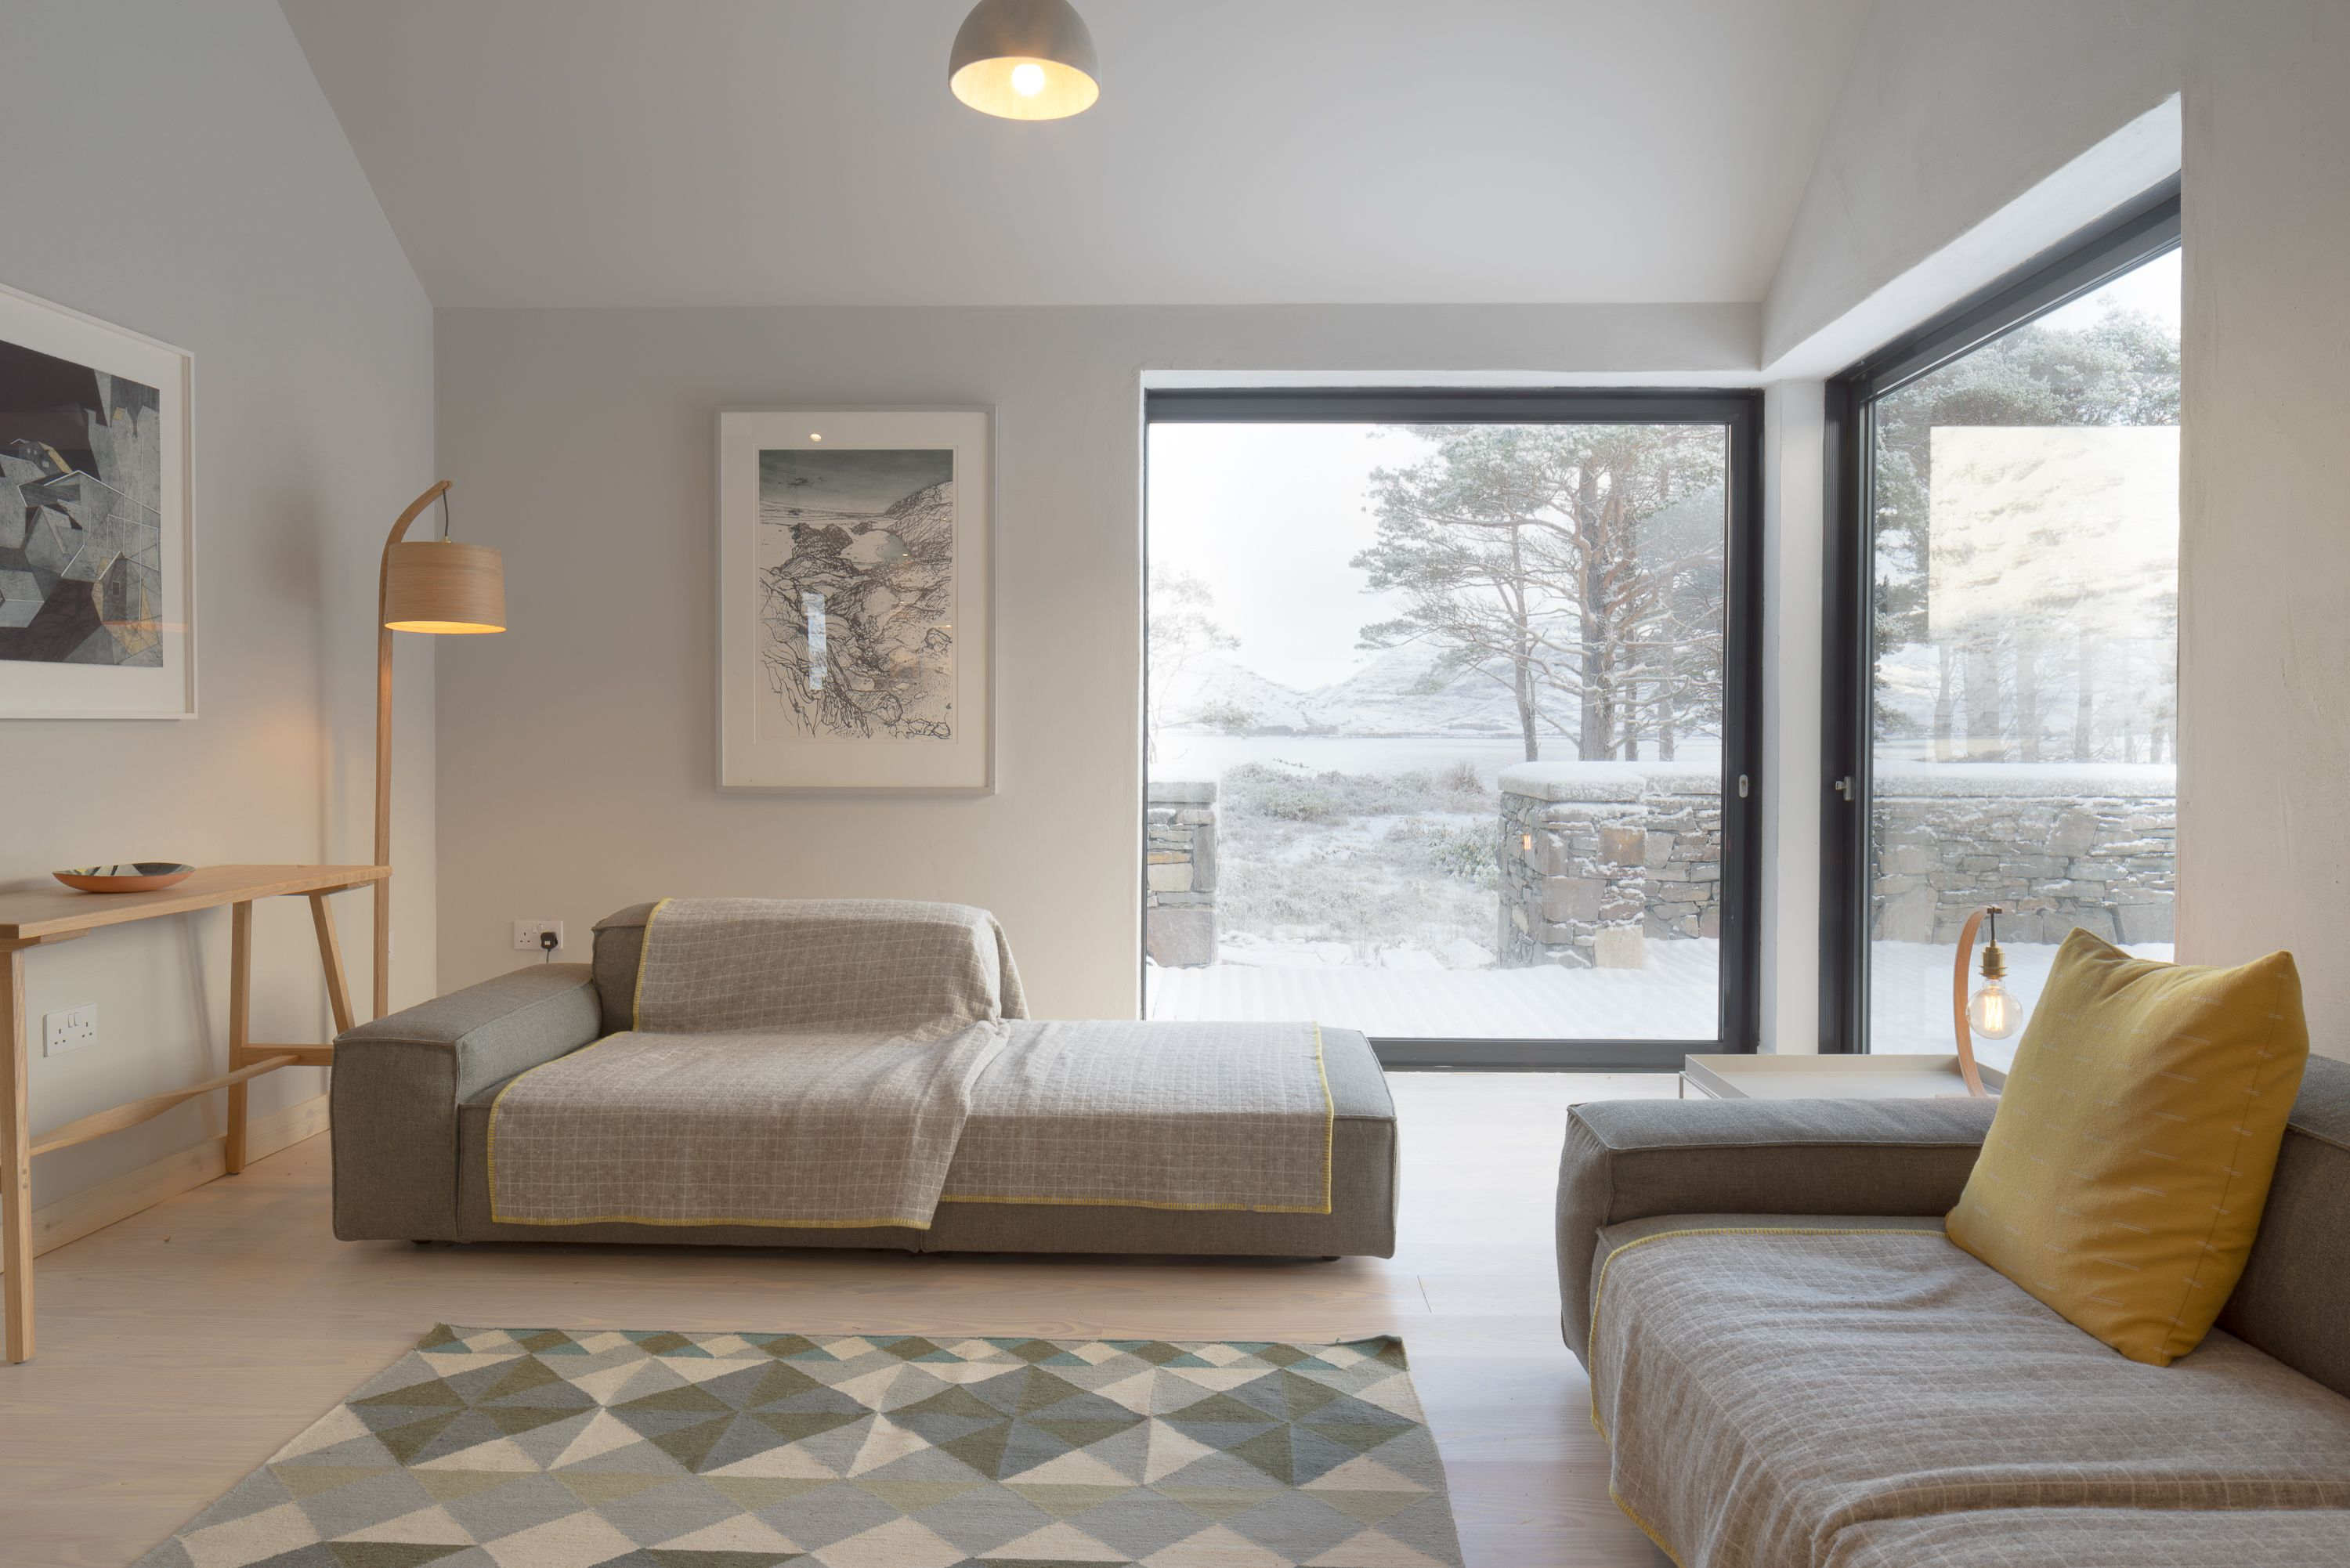 2018 RIBA House of the Year, Lochside House di HaysomWardMiller Architects – Highlands scozzesi, Gran Bretagna